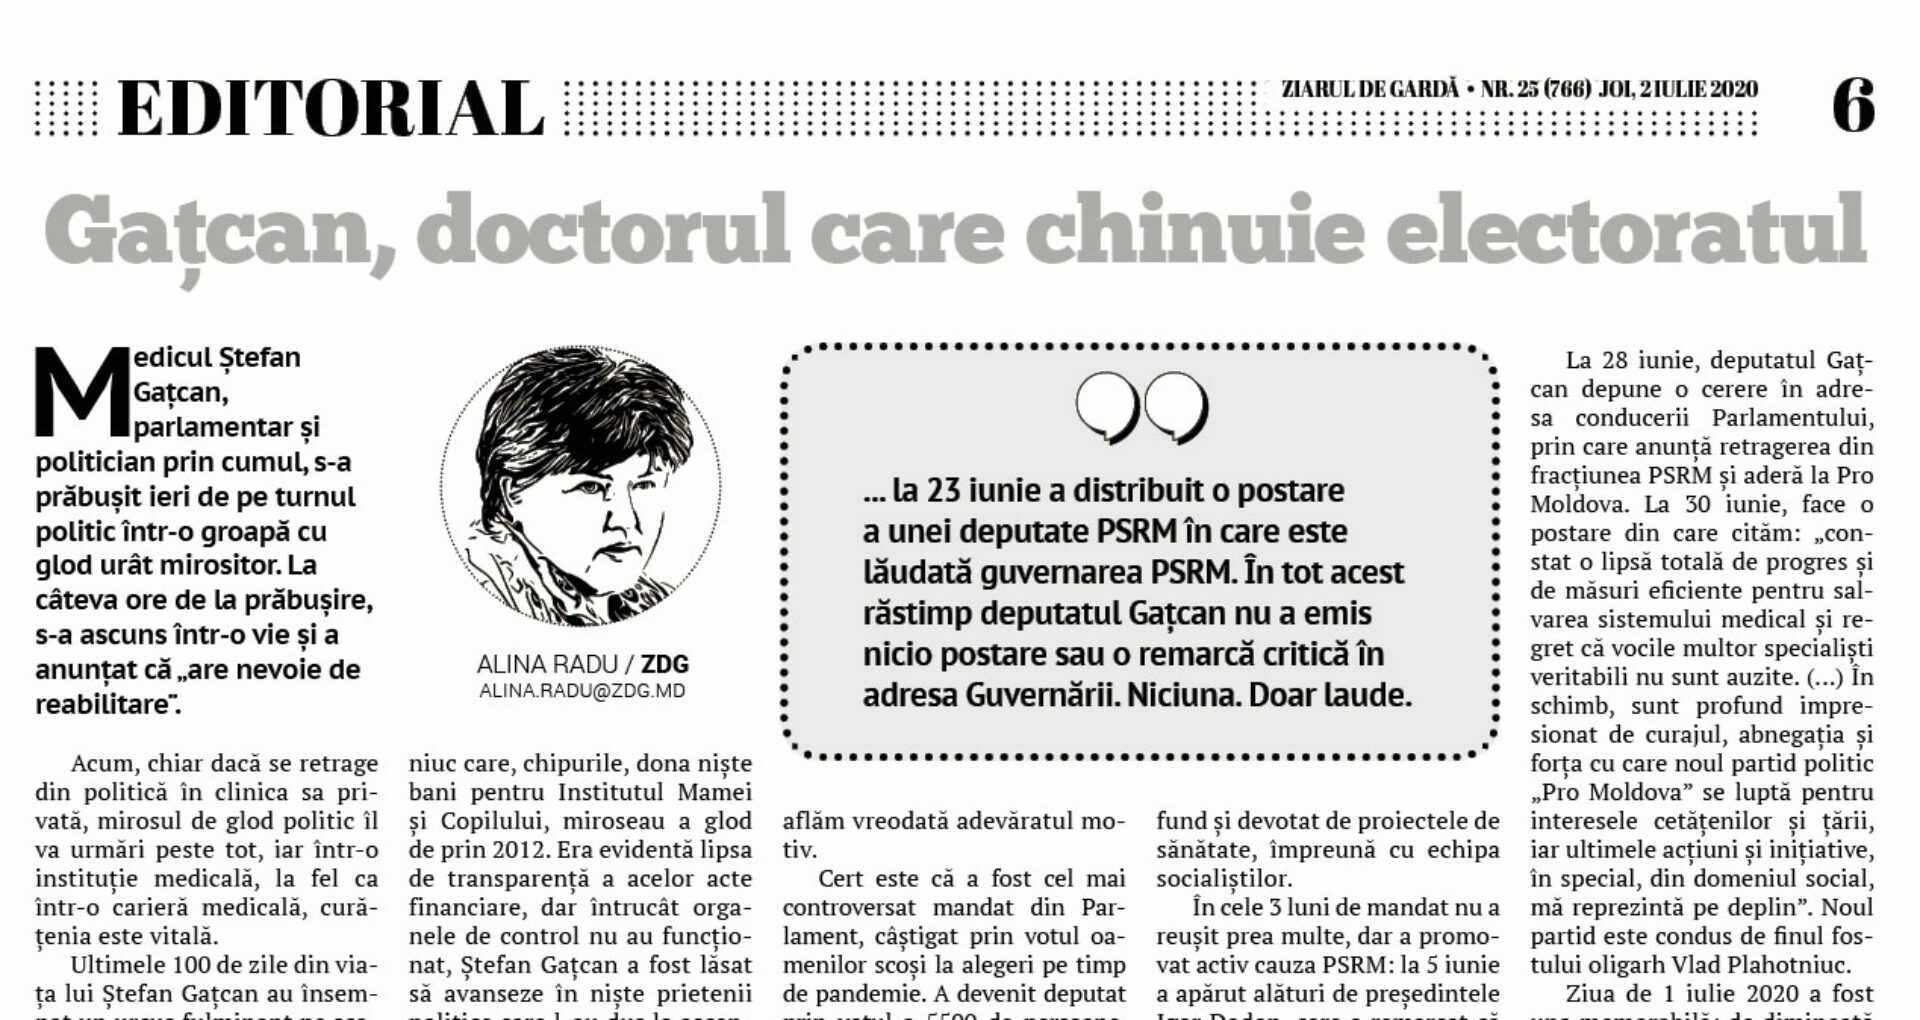 Ștefan Gațcan, the Doctor Who Taunts the Electorate